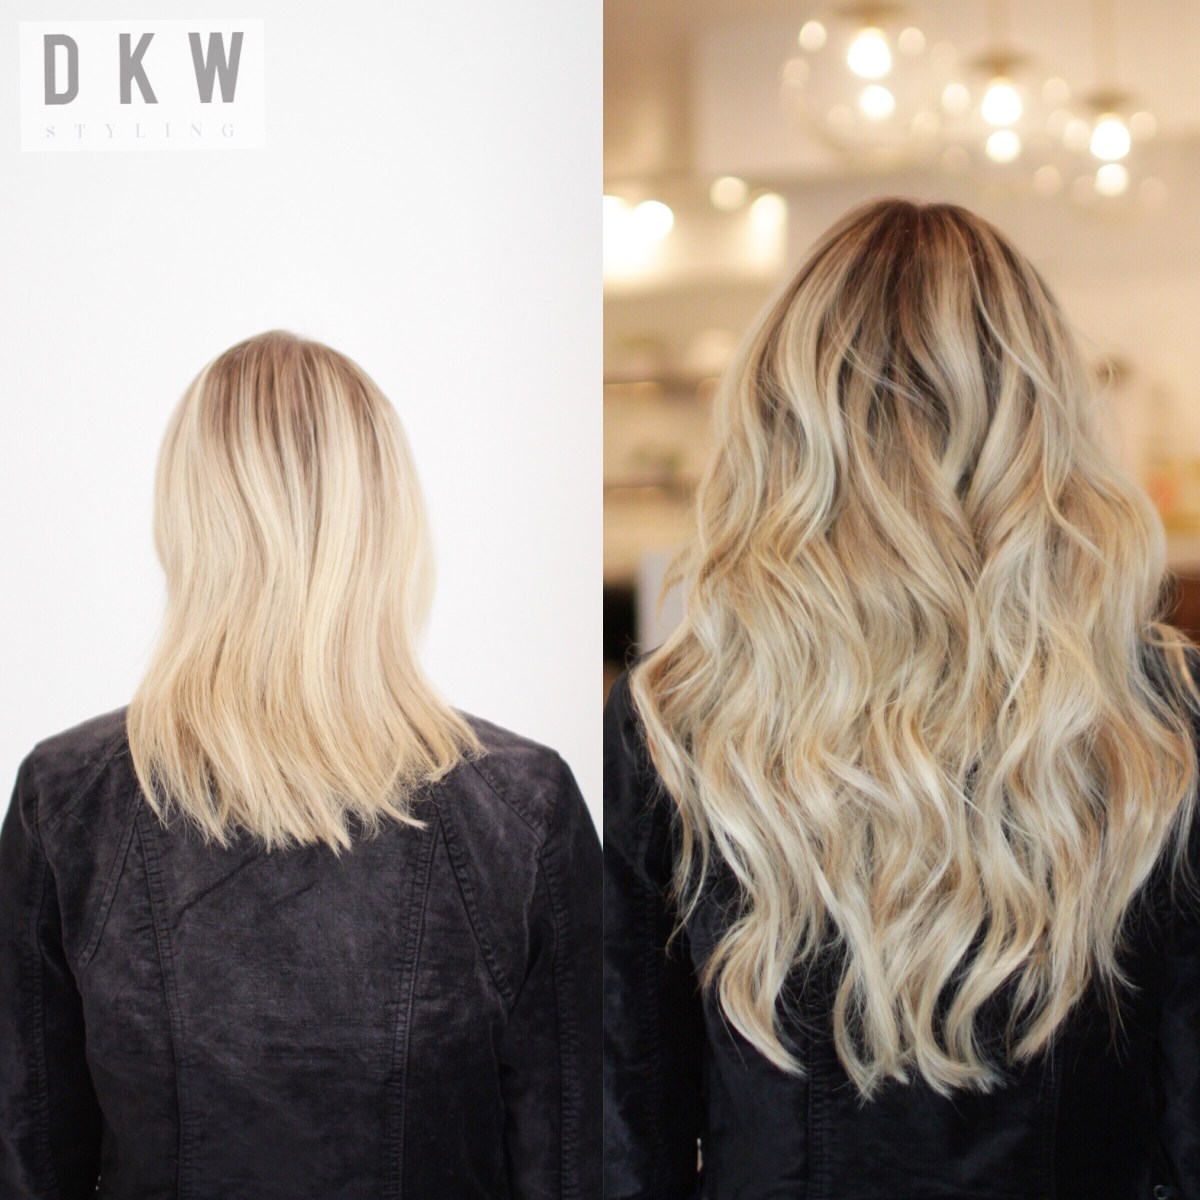 1 Salons Offering Nbr Hair Extensions Dkw Styling